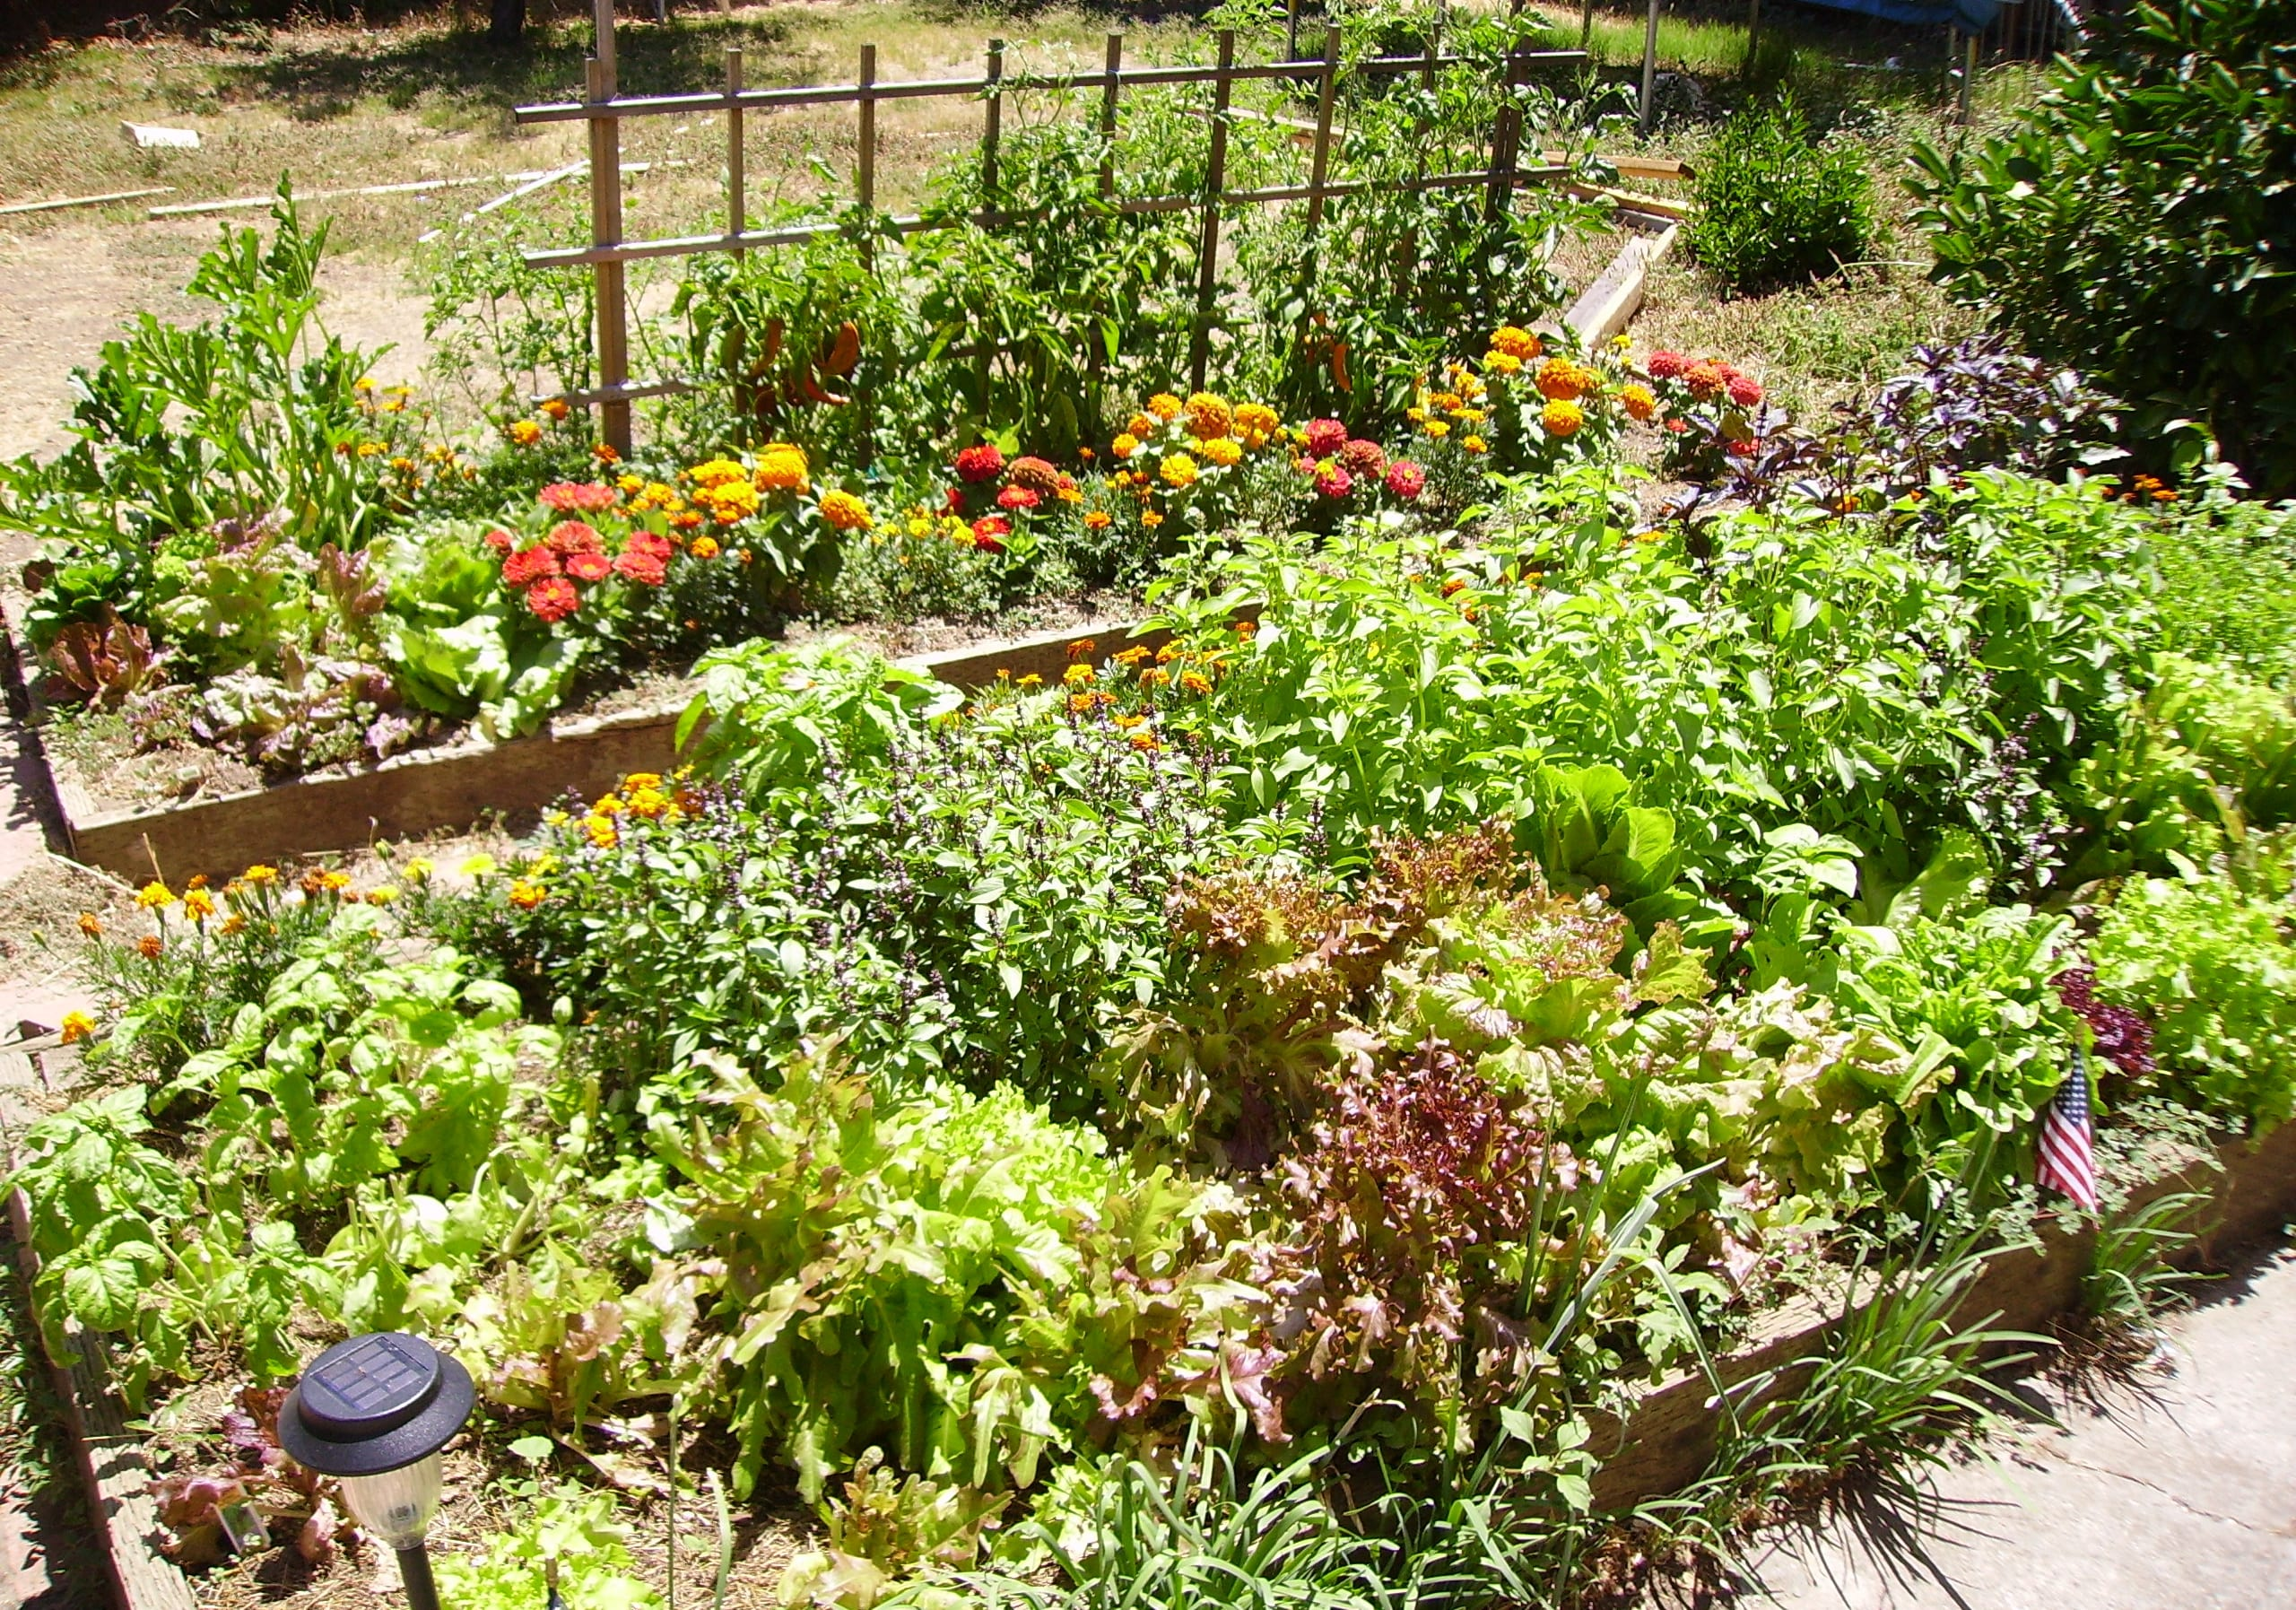 Gardening Tips on Layout & Planning for Your First Vegetable ... on cinder blocks raised garden, raised bed flower garden design, veggie garden, raised garden planter boxes, raised backyard landscaping, raised backyard design, raised bed garden layouts, raised bed planting layout guides, raised backyard playground, raised vegetable beds, raised flower bed design ideas, raised garden layout plans, raised garden ideas,